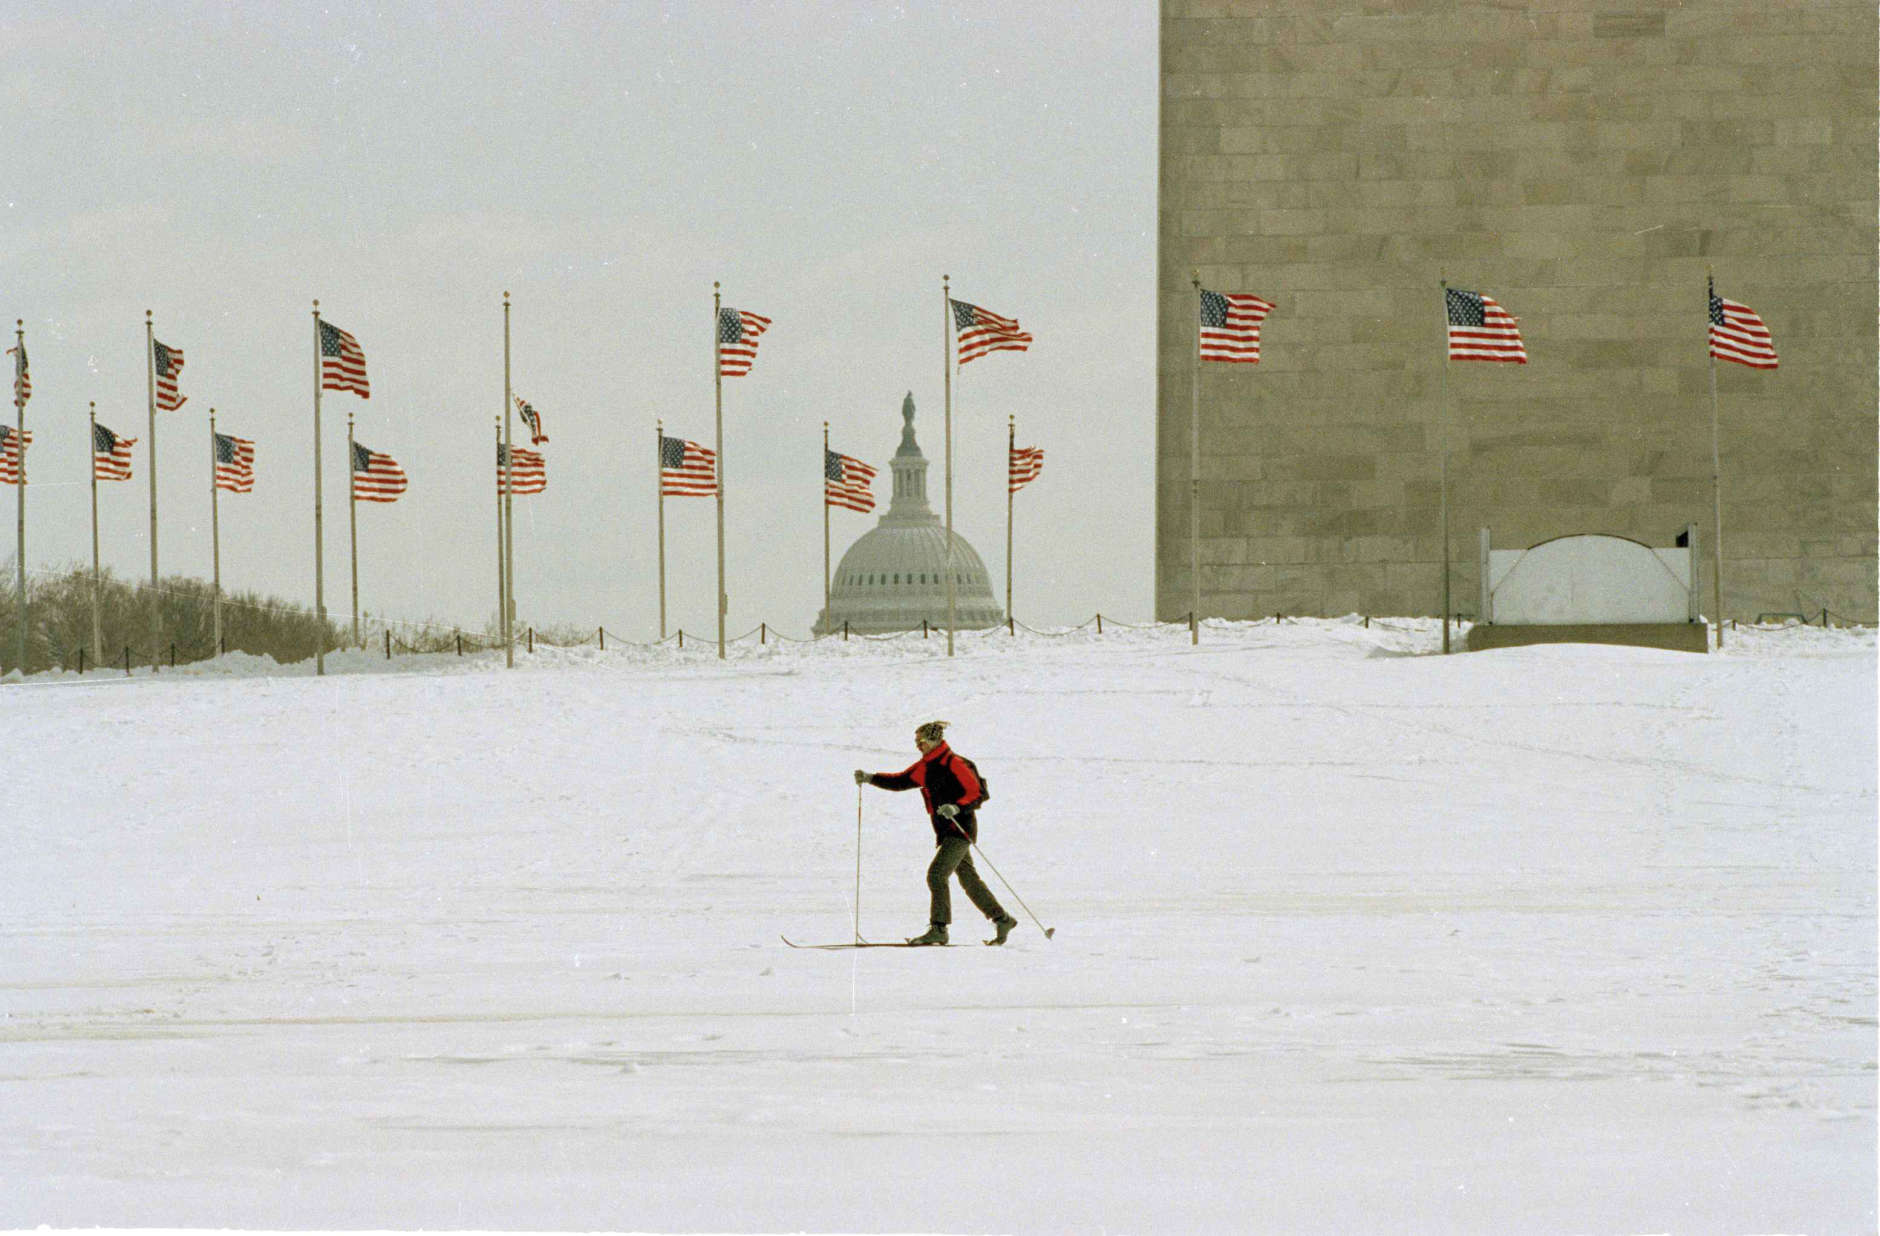 A lone skier crosses the Mall in front of the Washington Monument, March 14, 1993. Much of downtown Washington was deserted Sunday morning as they city began to recover from one of the biggest winter storms in recent years. (AP Photo/Doug Mills)